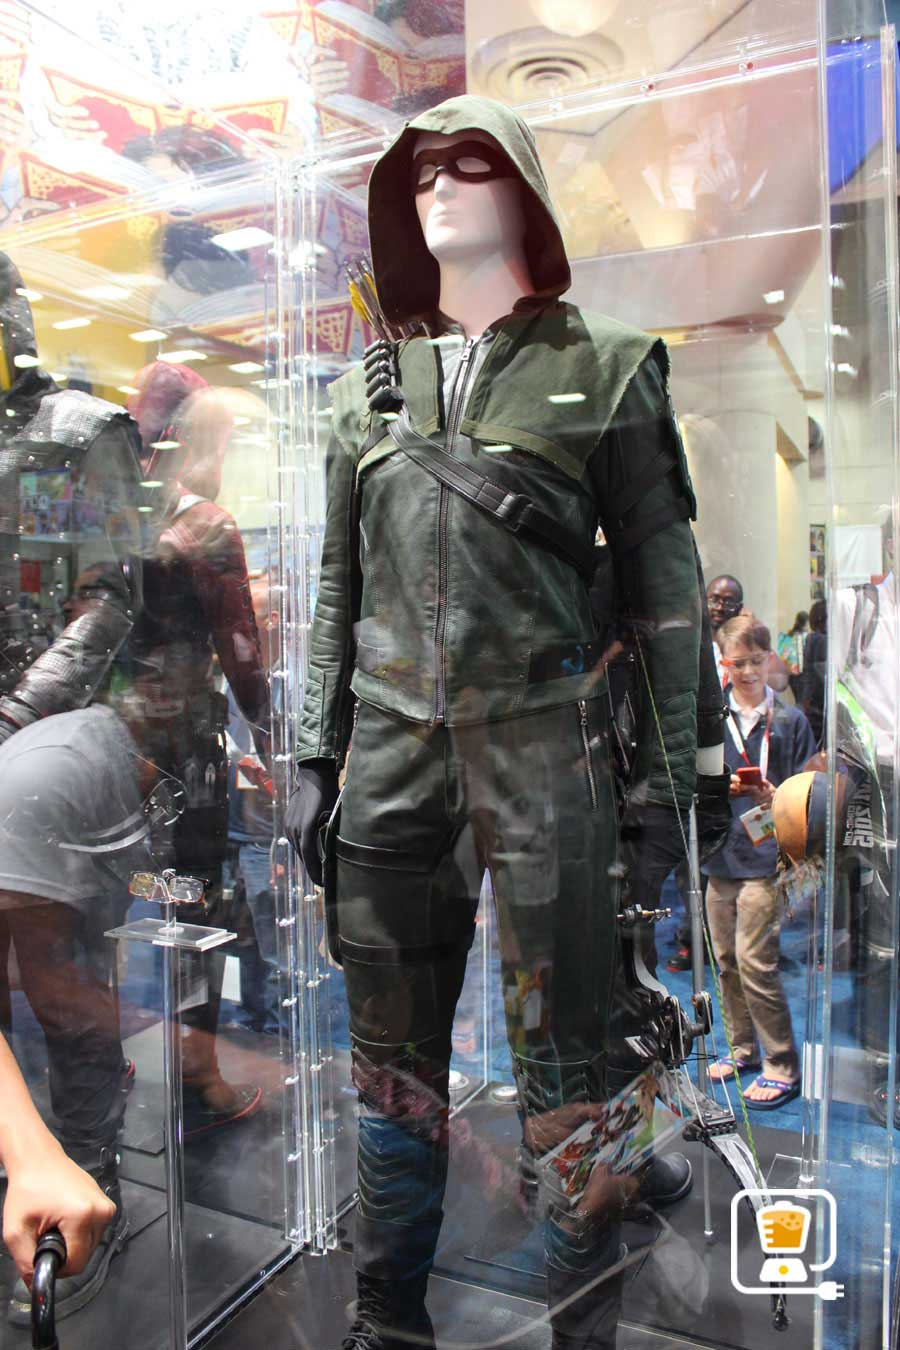 See Flash And Arrow's Amazing Costumes And Gadgets On Display At Comic-Con #32889